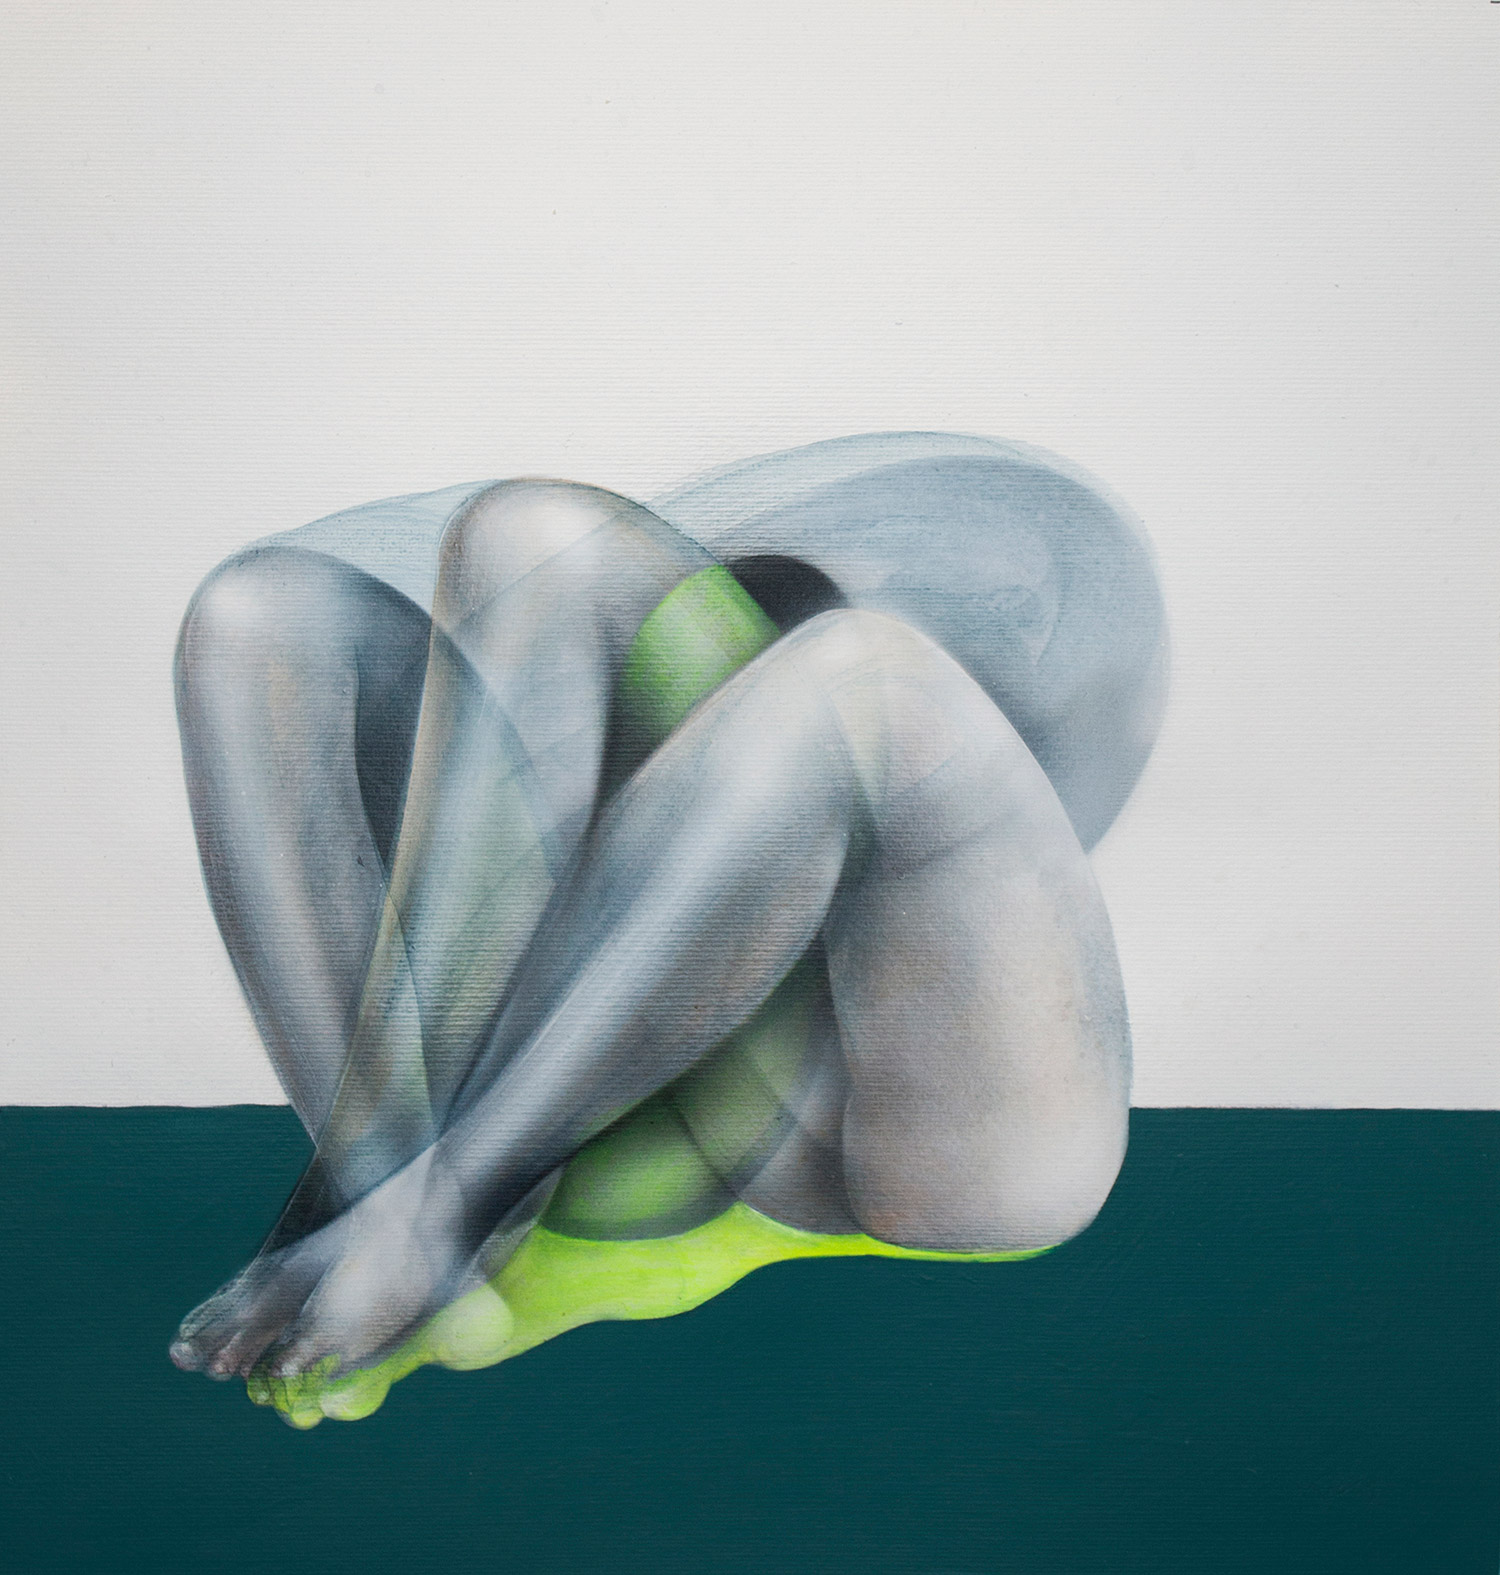 John Reuss - Untitled - green figure crouching